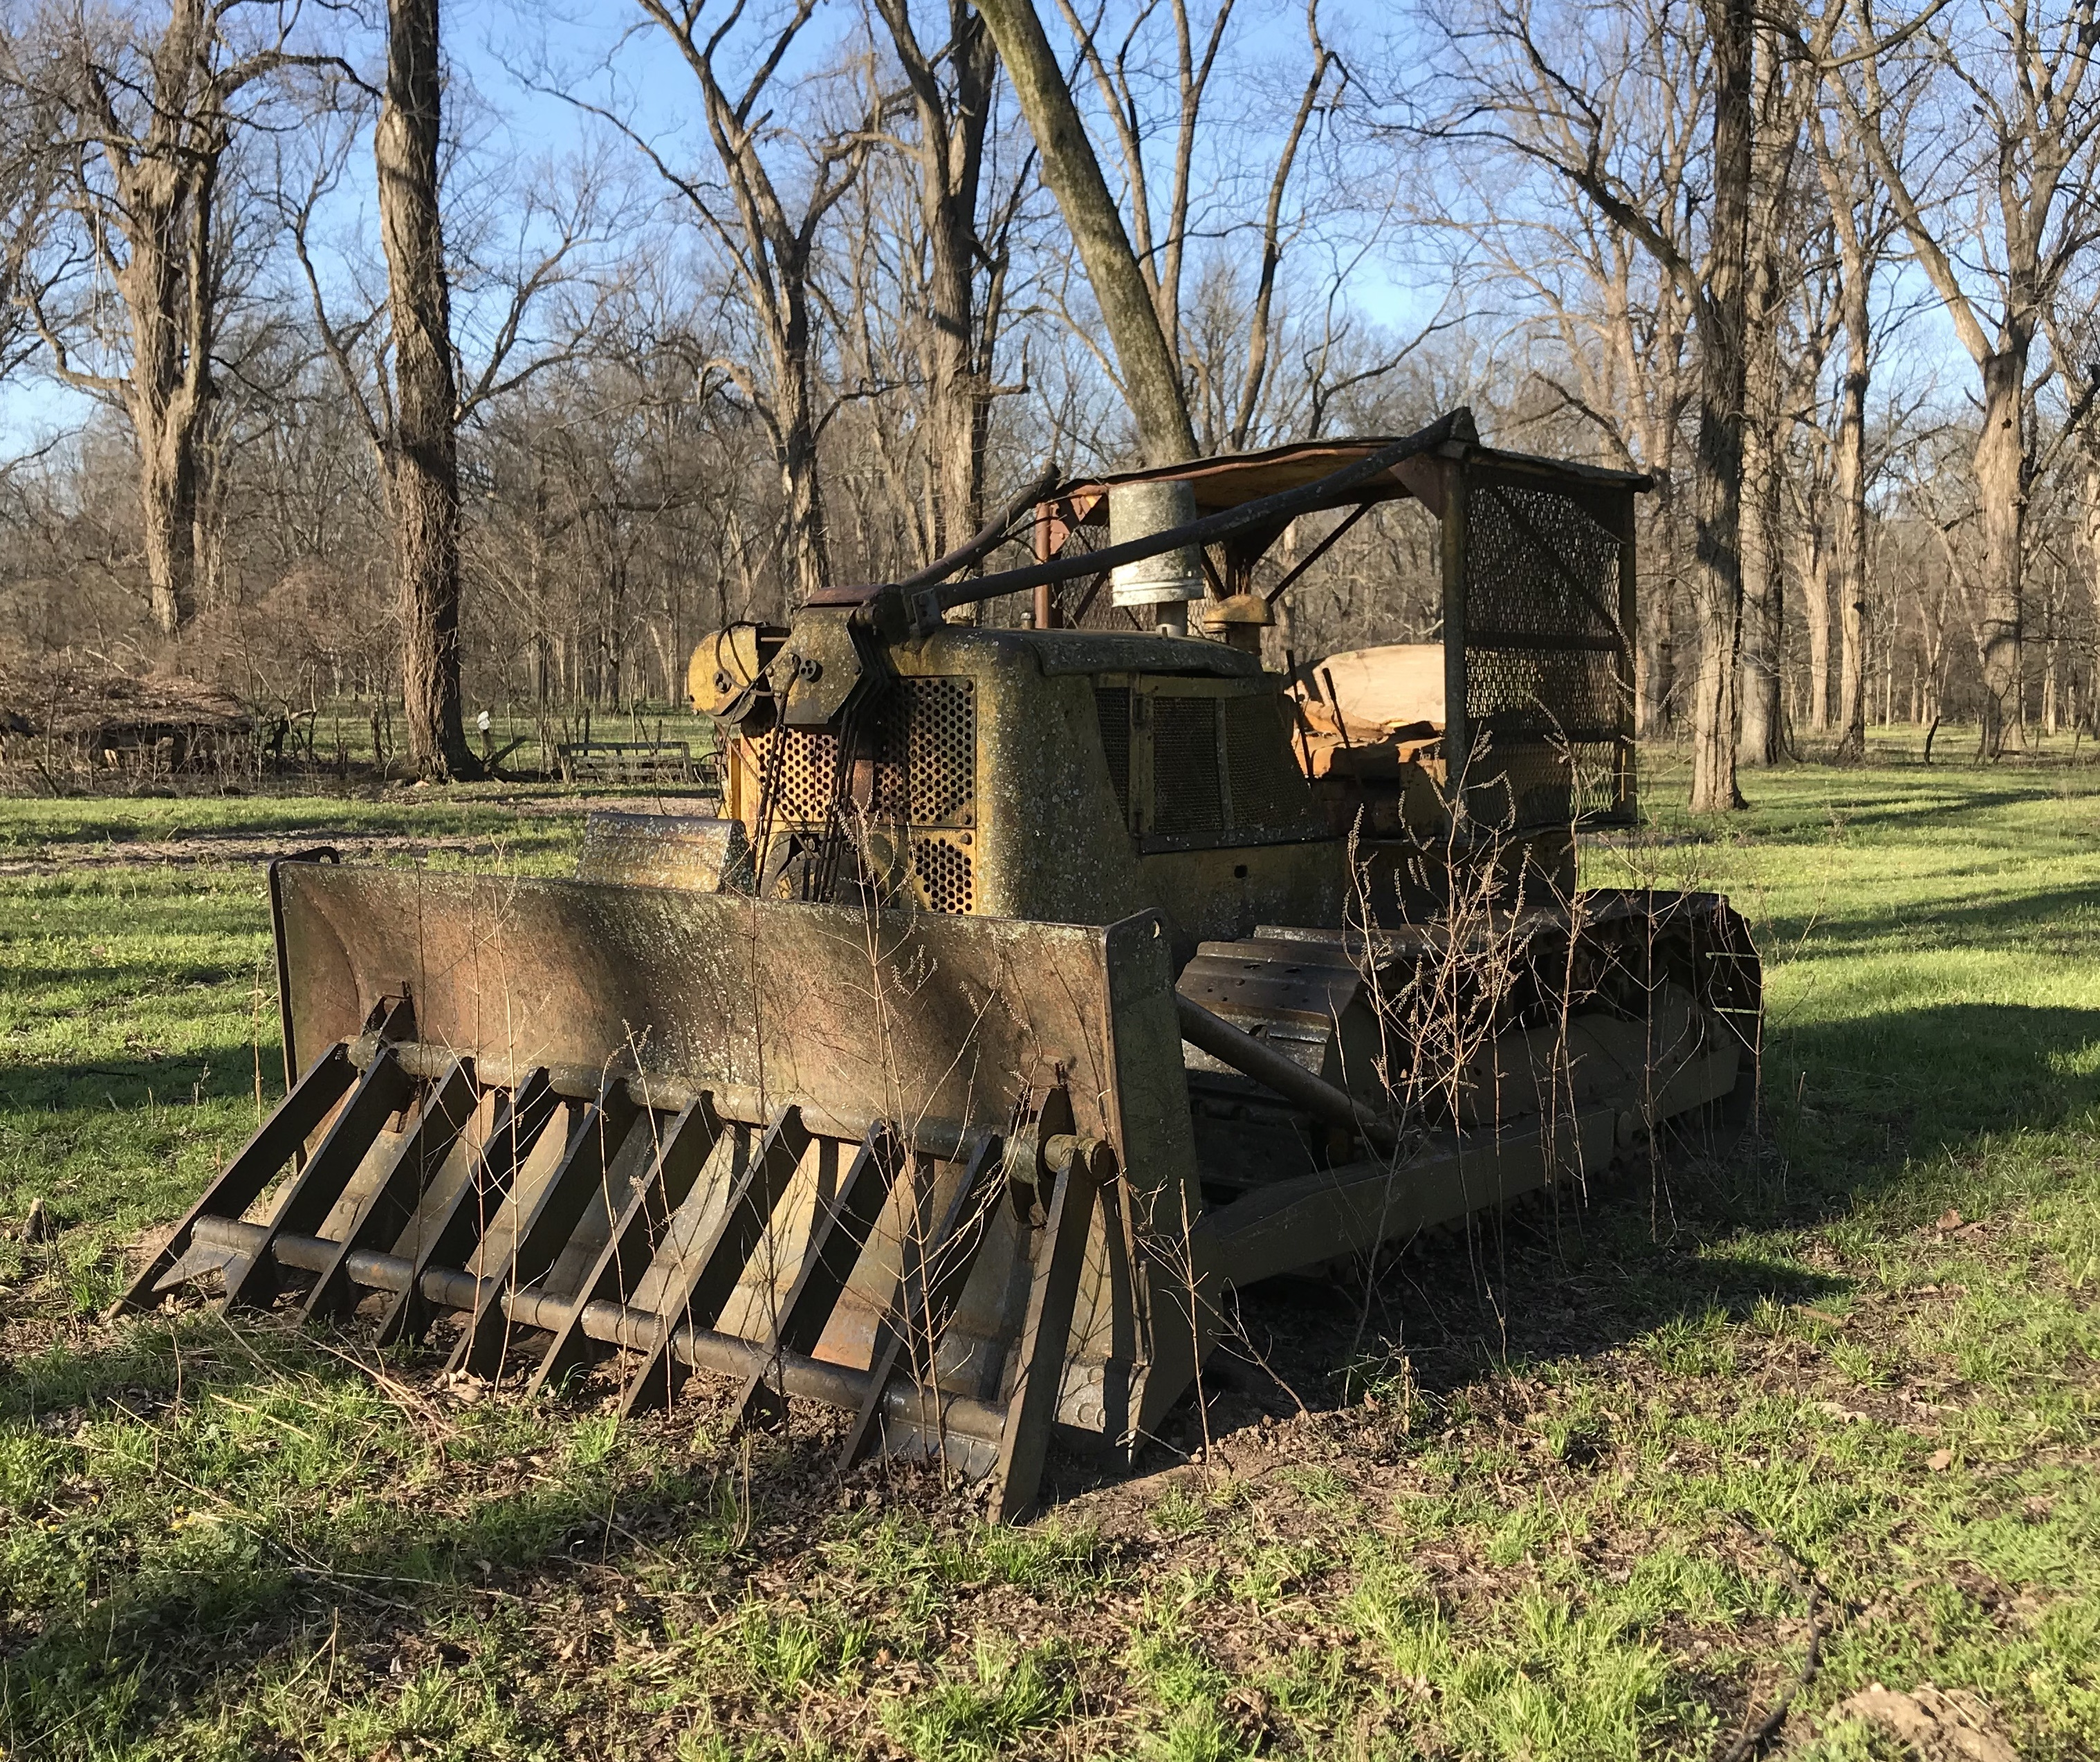 1957 Caterpillar D7-17A Crawler